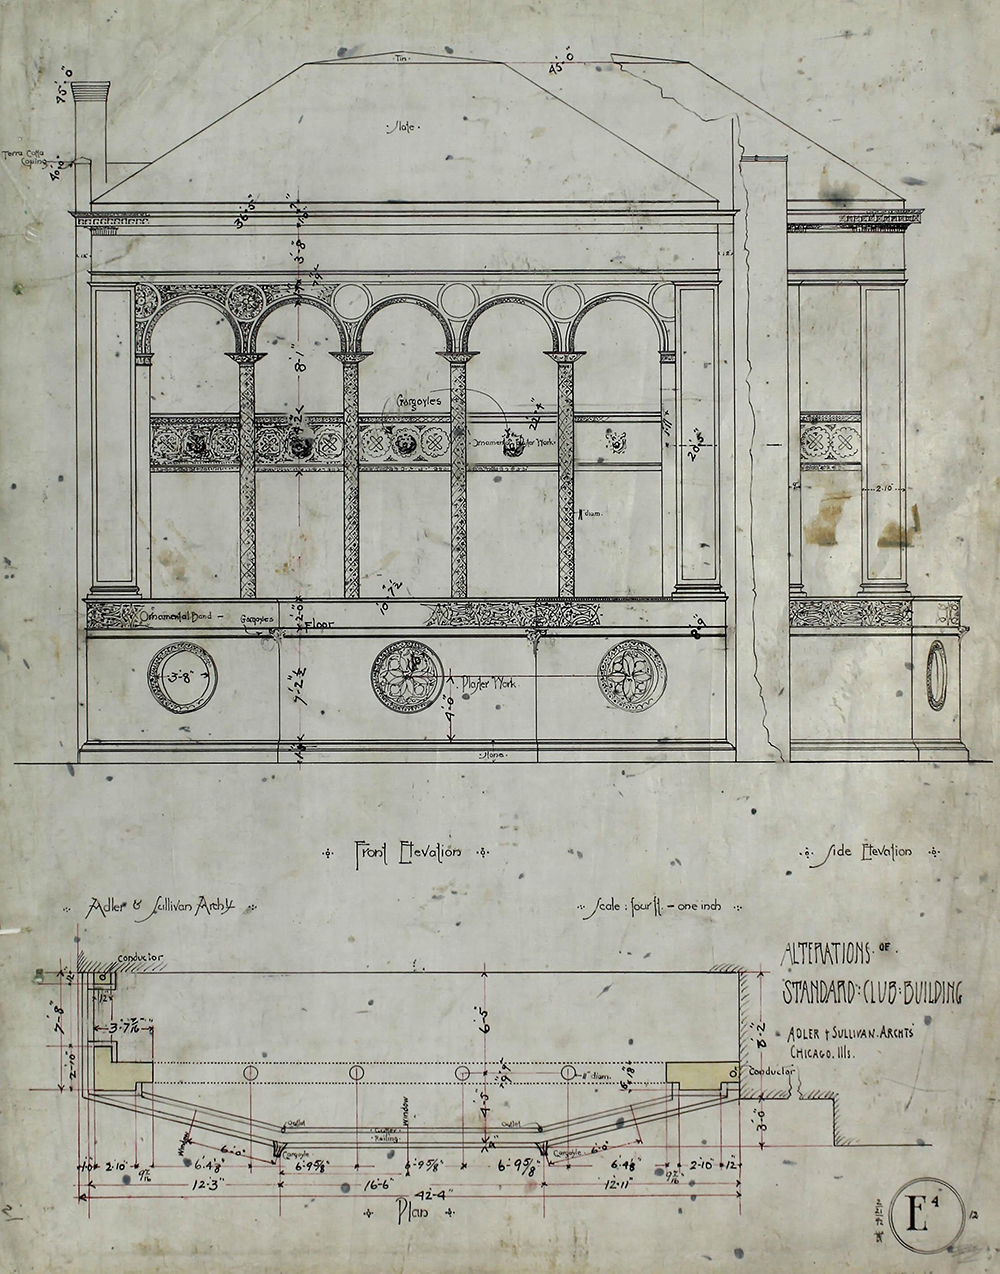 Standard Club addition and alterations, first-floor plan, by Adler & Sullivan, 1892.